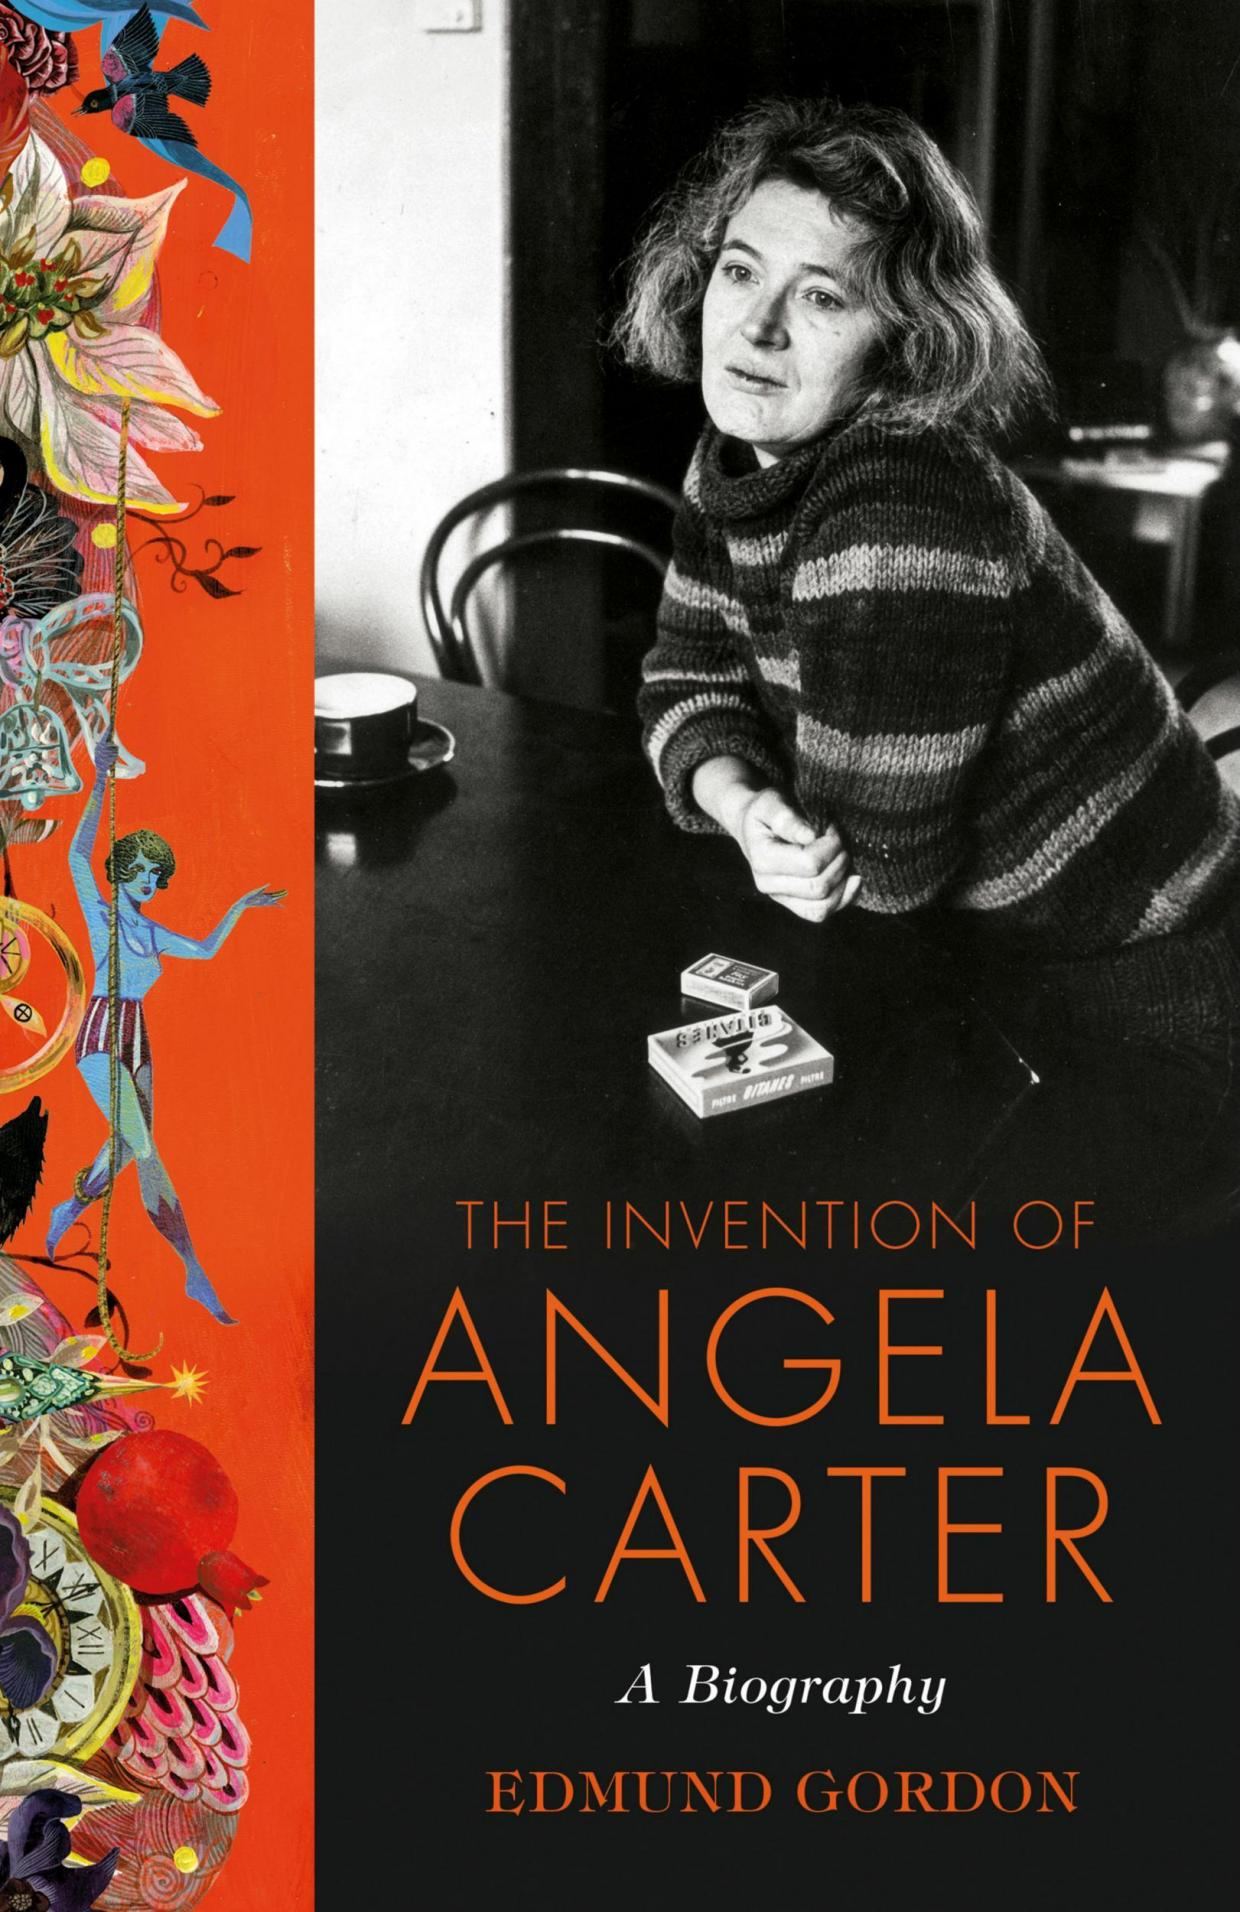 Image result for angela carter biography